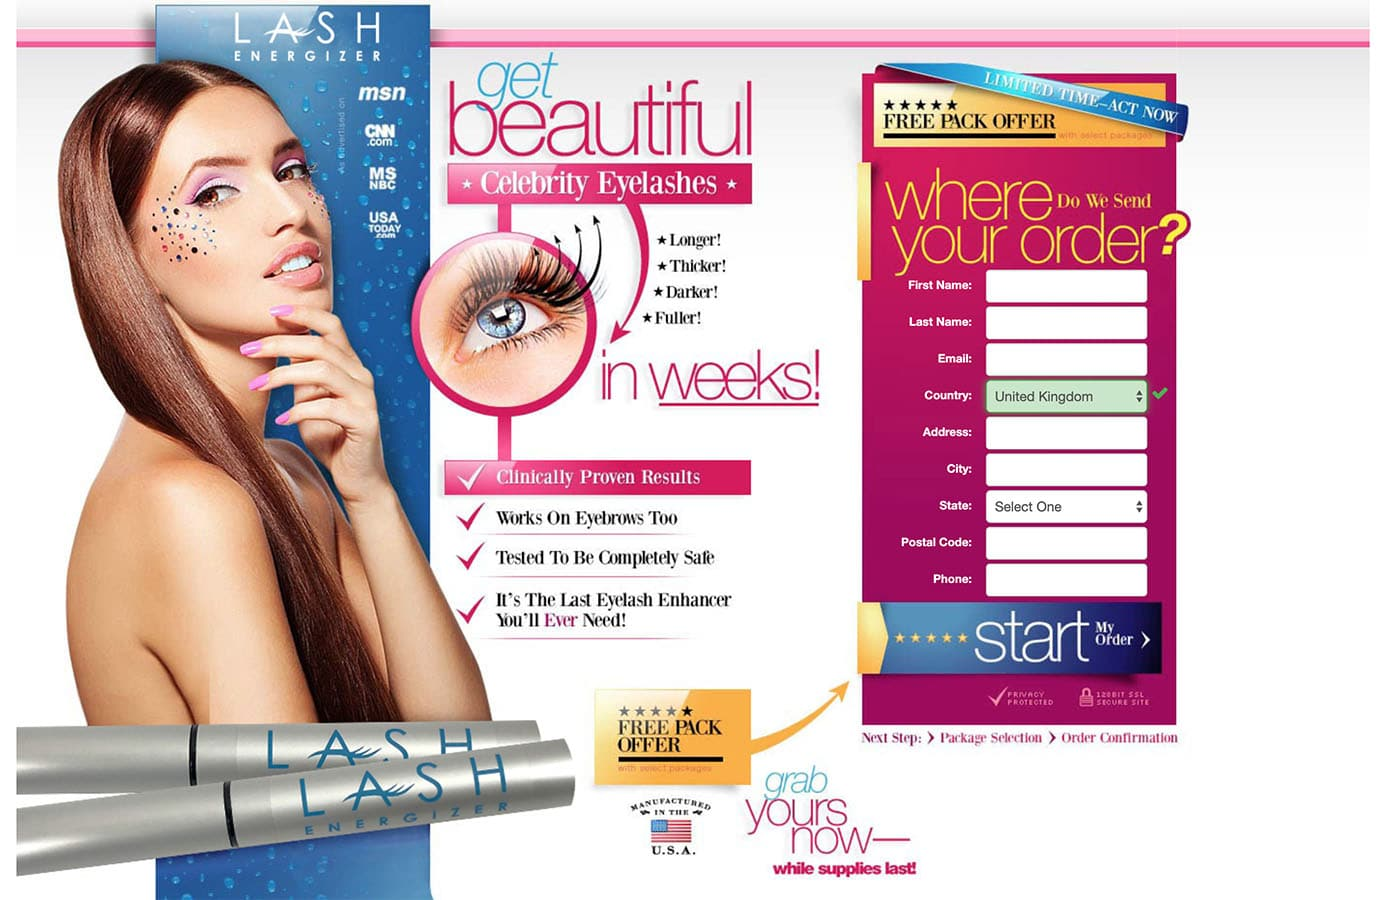 lash energizer uk website